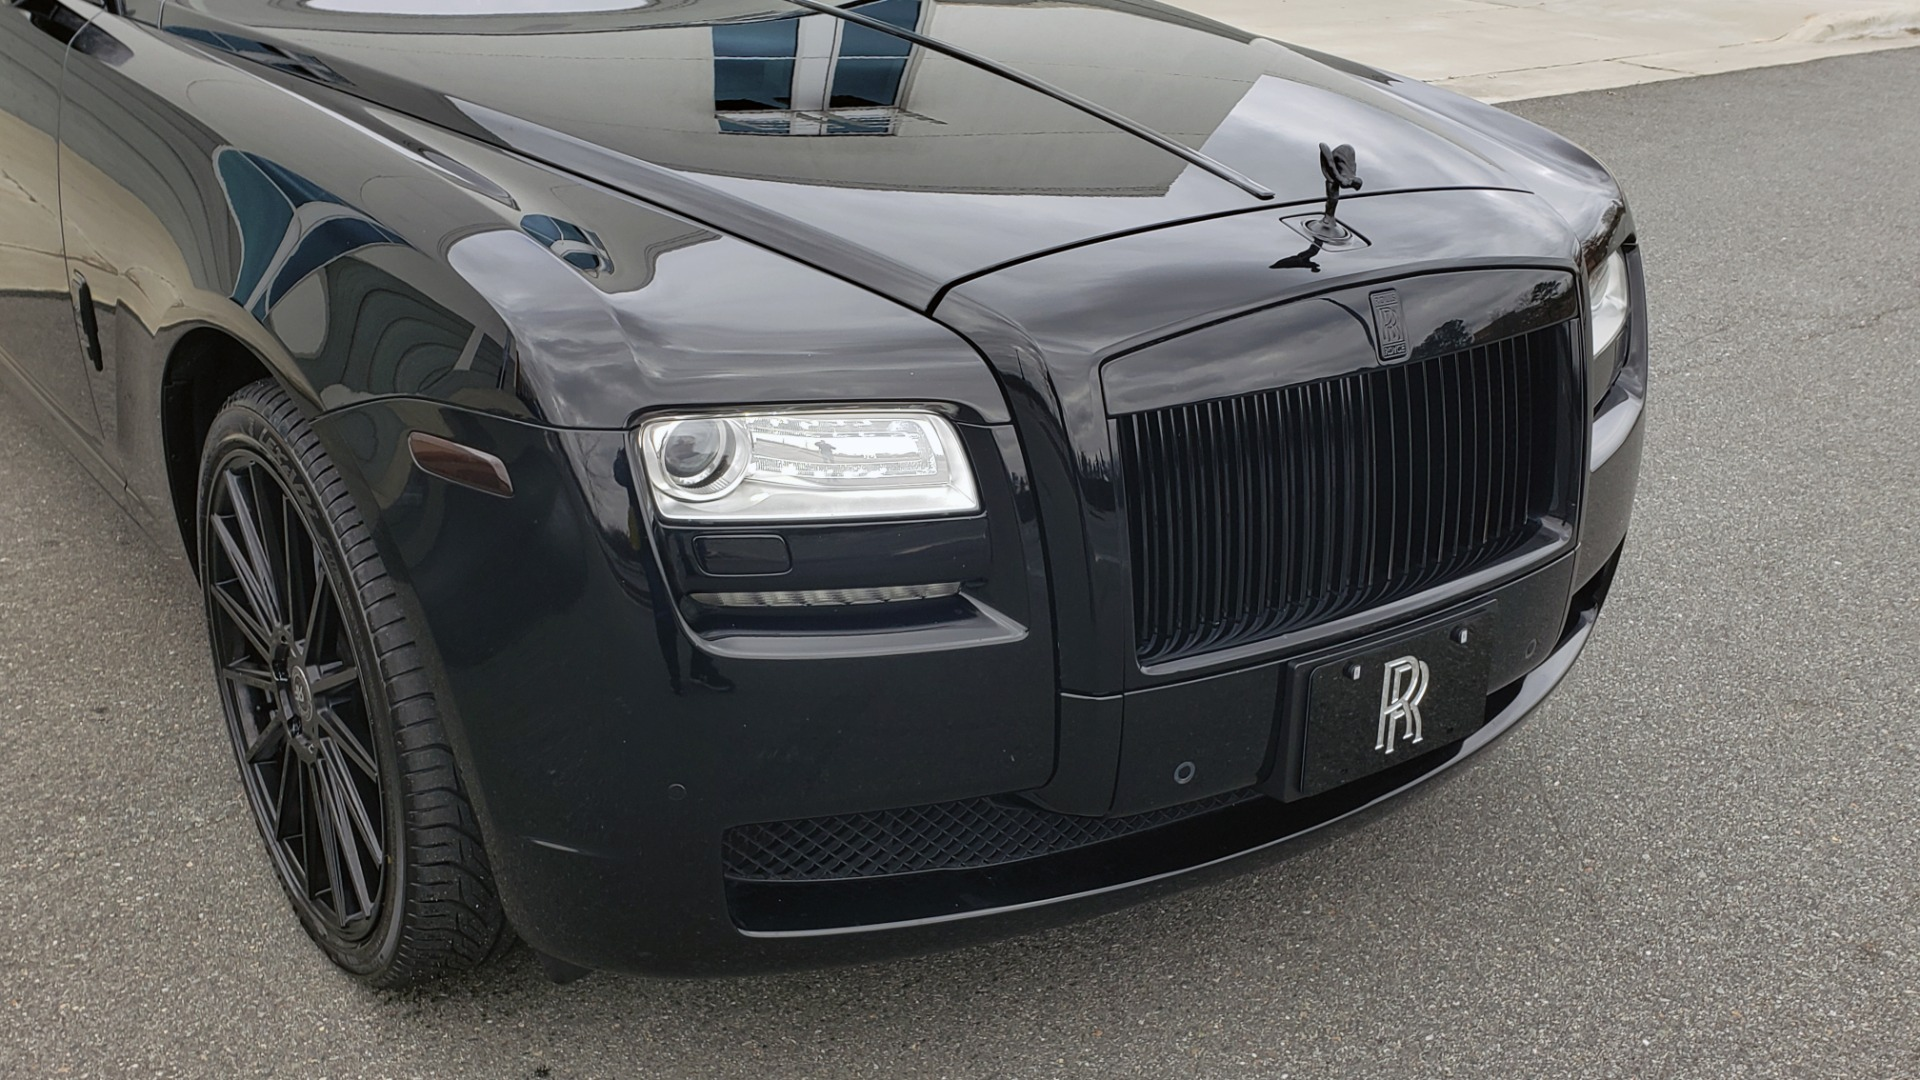 Used 2010 Rolls-Royce GHOST 6.6L TURBO V12 (563HP) / NAV / SUNROOF / SUICIDE DOORS for sale $89,000 at Formula Imports in Charlotte NC 28227 49